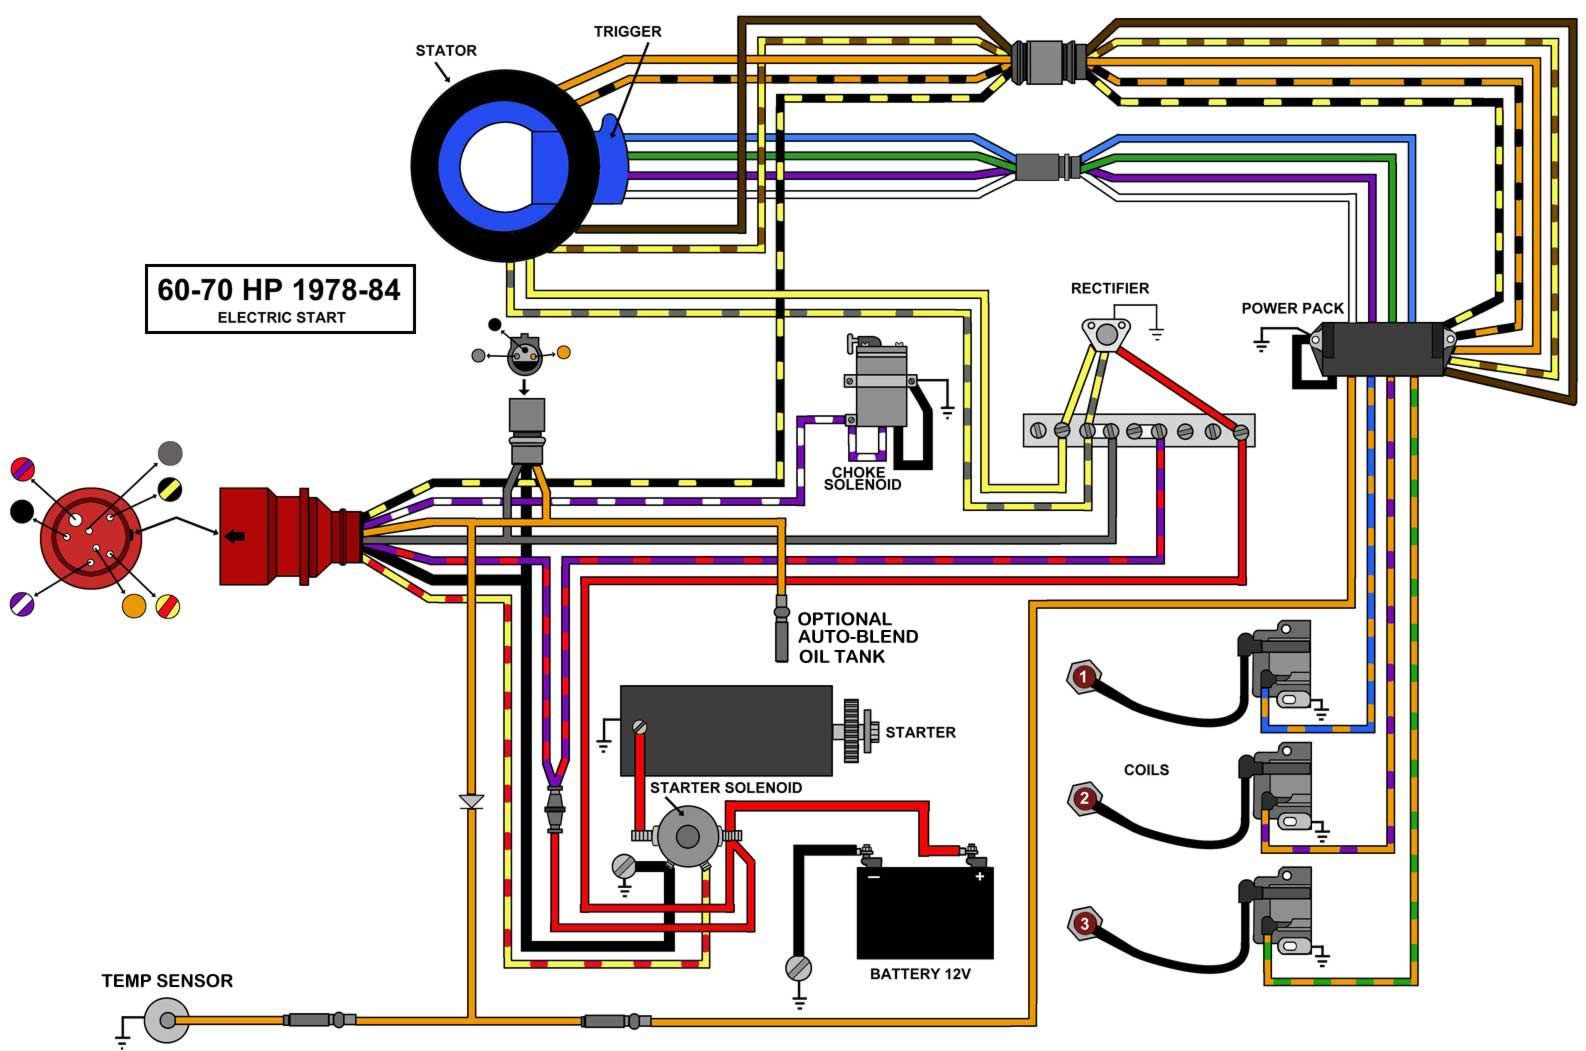 Image Result For 70 Hp Johnson 1988 Wiring To Tachometer Etc Diagram Outboard Outboard Motors Diagram